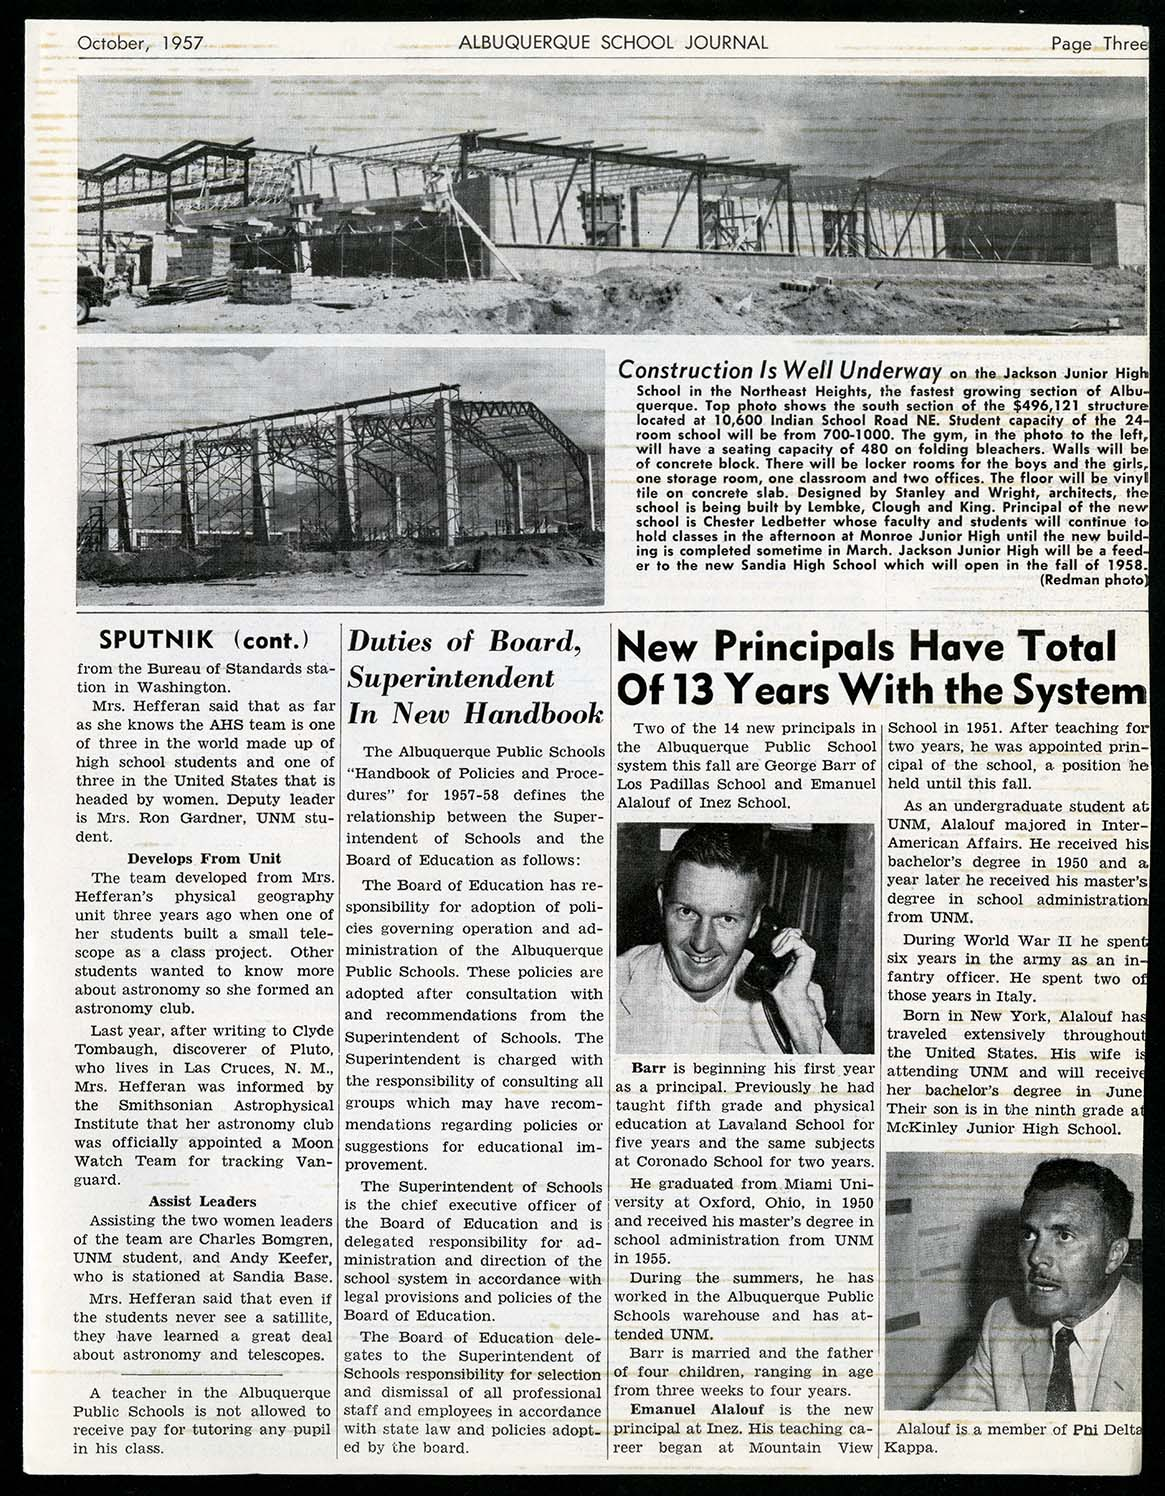 Image of a newspaper page of the October 1957 Albuquerque Public Schools Journal. An article on this